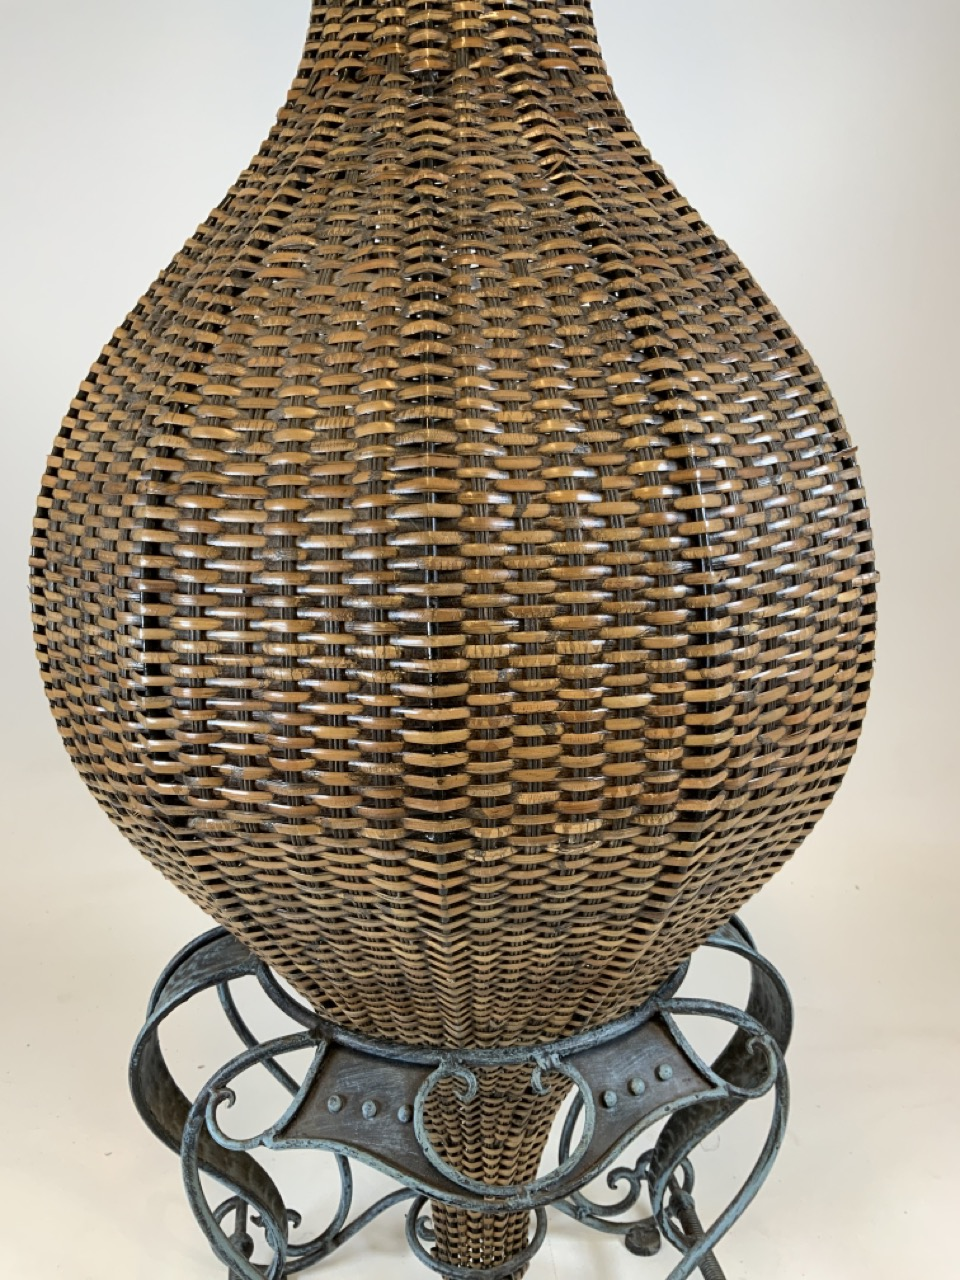 A large wicker conservatory vase in stand with metal hoop handles and decorative metal top. W:24cm x - Image 5 of 5